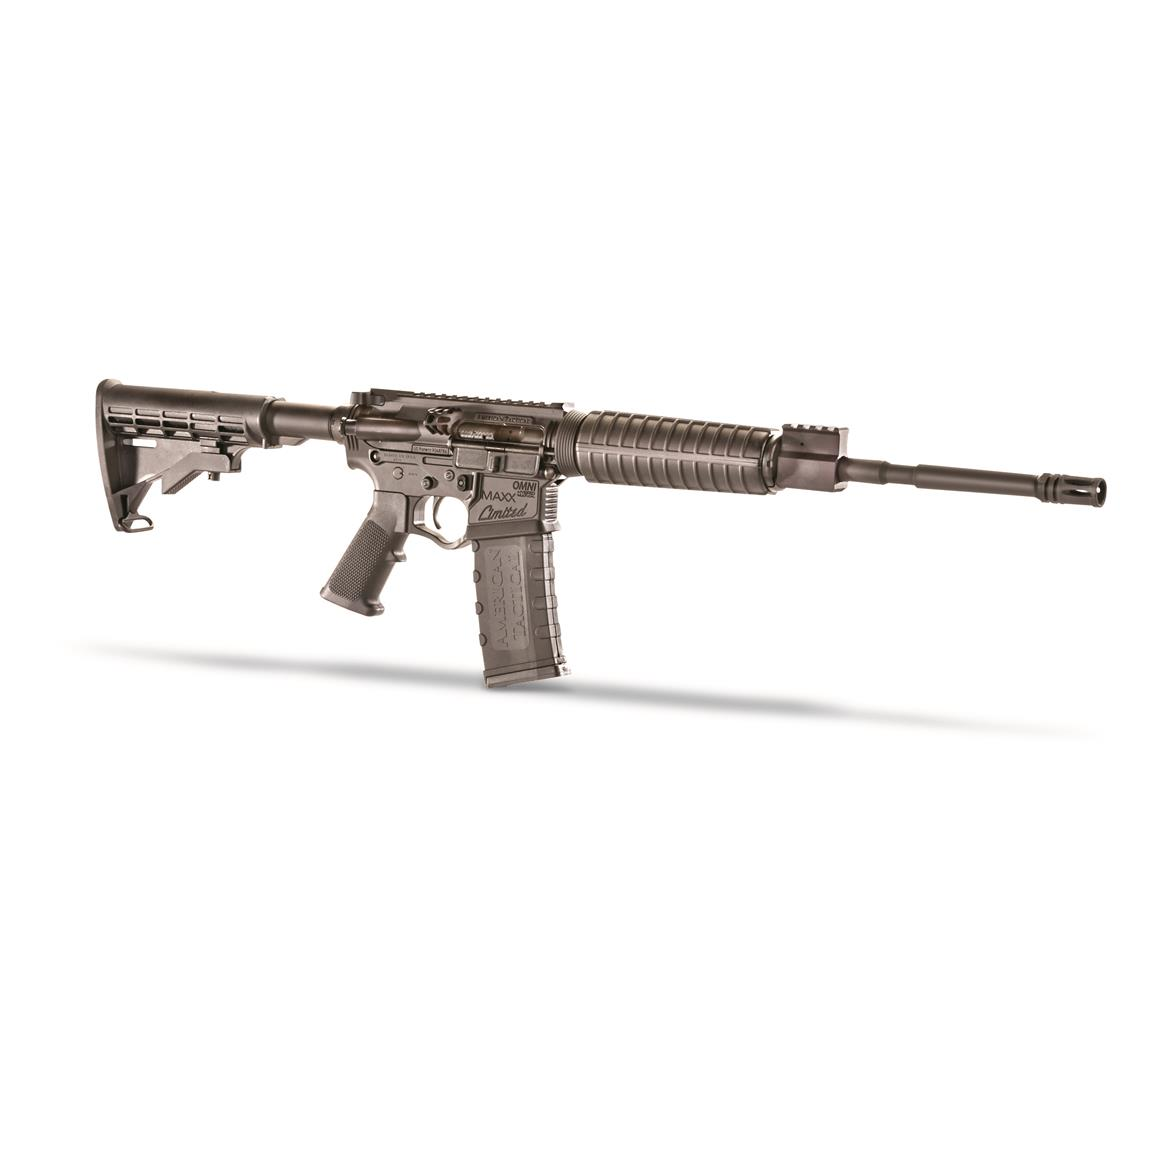 "ATI Omni Hybrid Maxx Limited AR-15, Semi-Automatic, 5.56x45mm, 16"" Barrel, 30+1 Rounds"